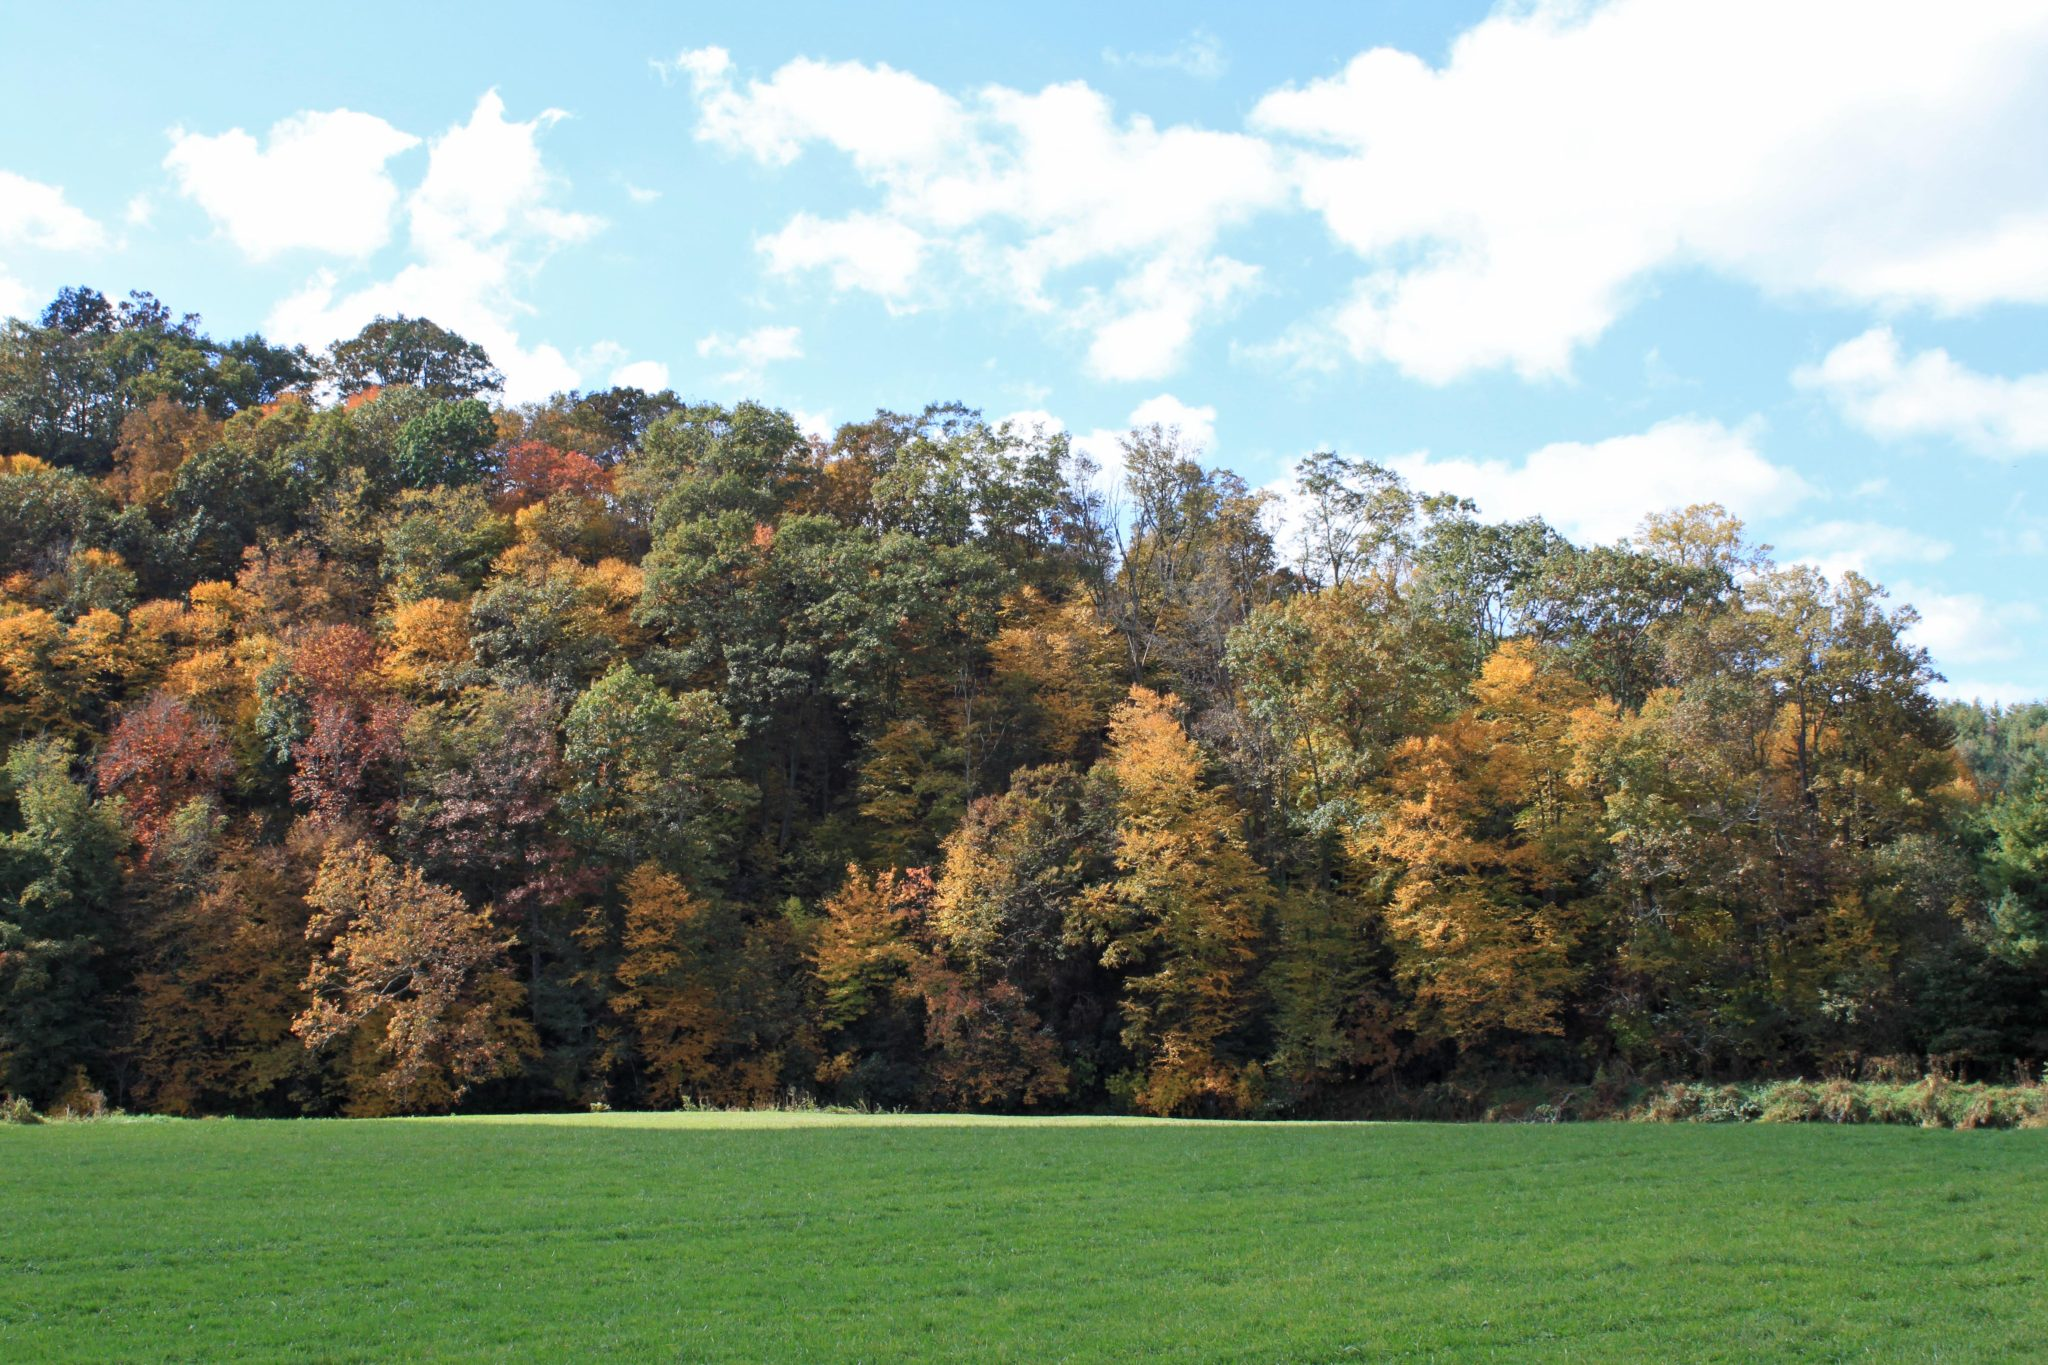 Fall foliage near South Fork of New River